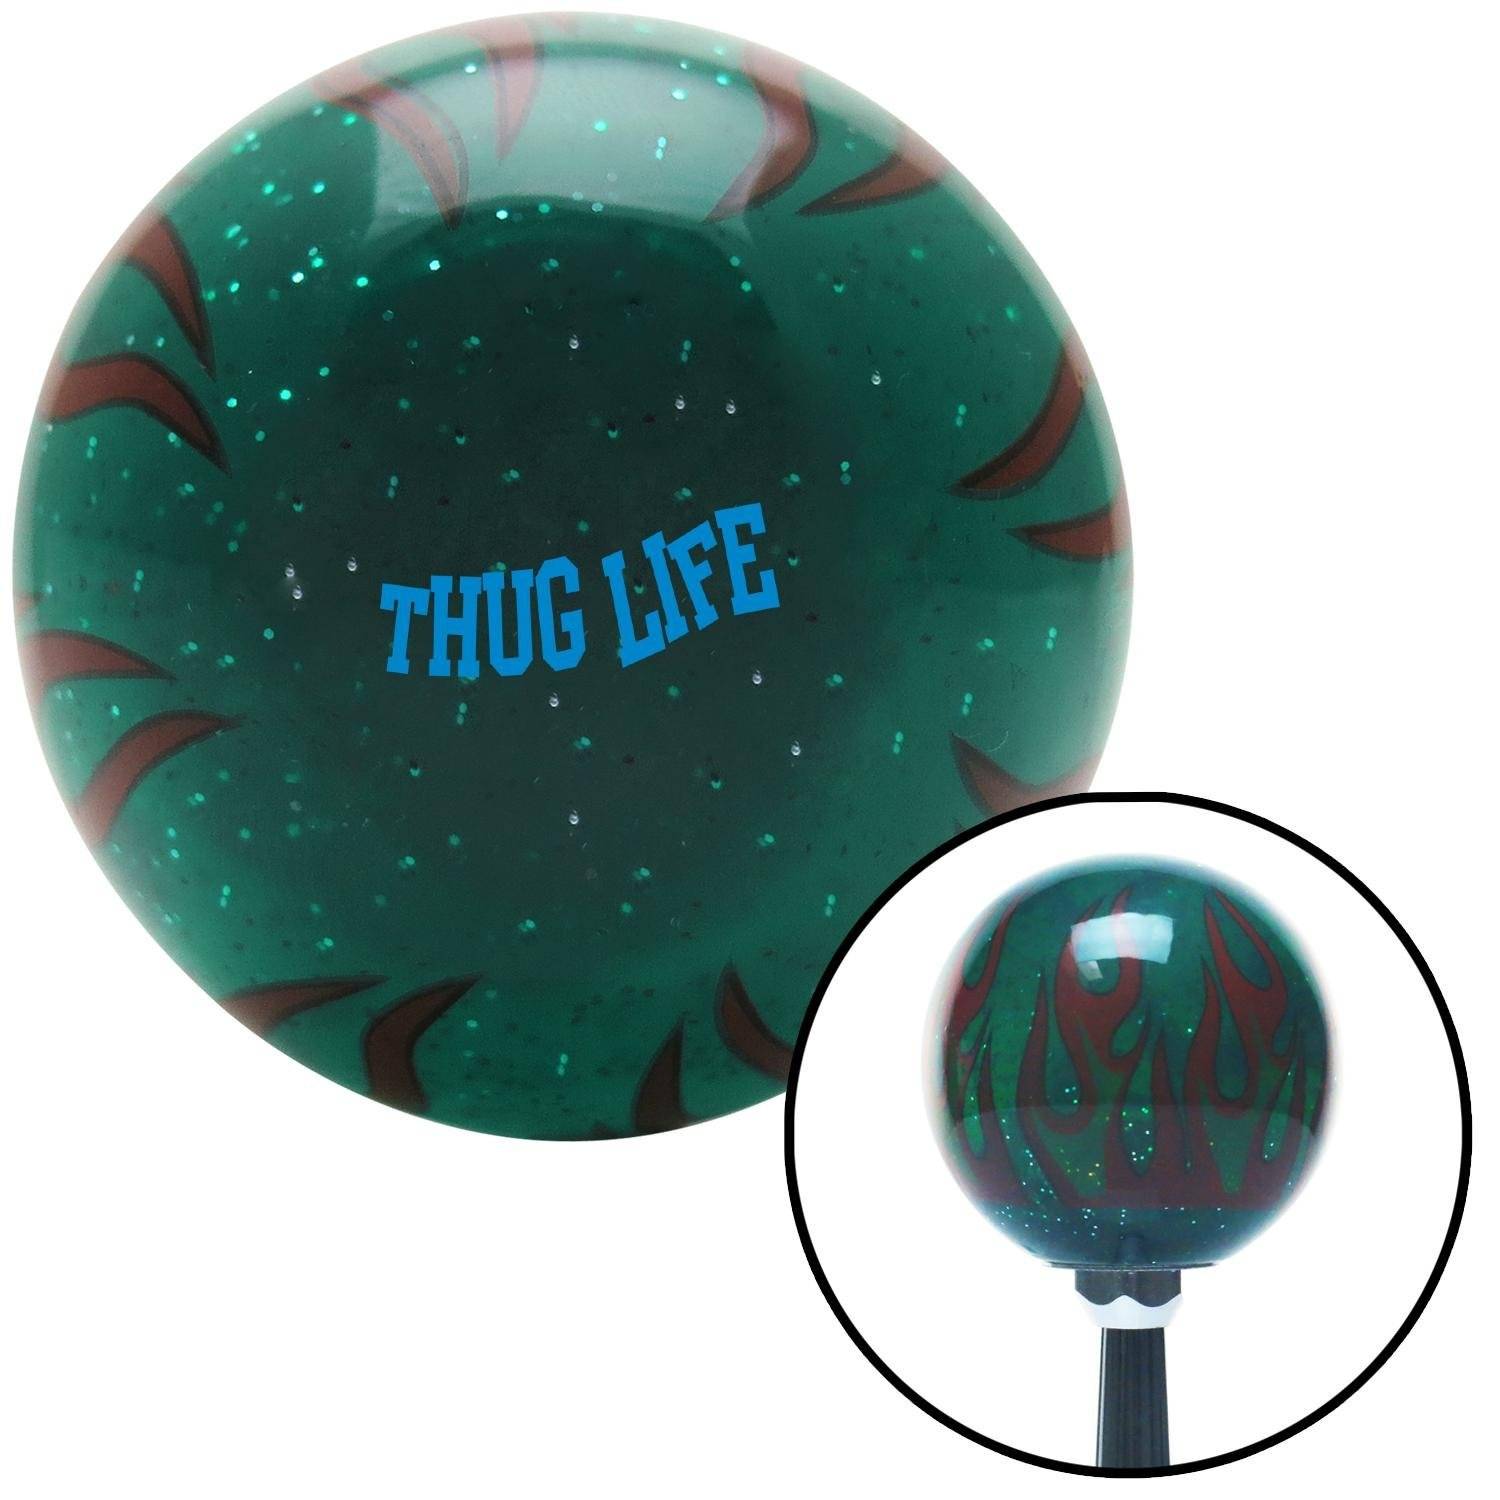 American Shifter 301063 Shift Knob Blue Thug Life Green Flame Metal Flake with M16 x 1.5 Insert